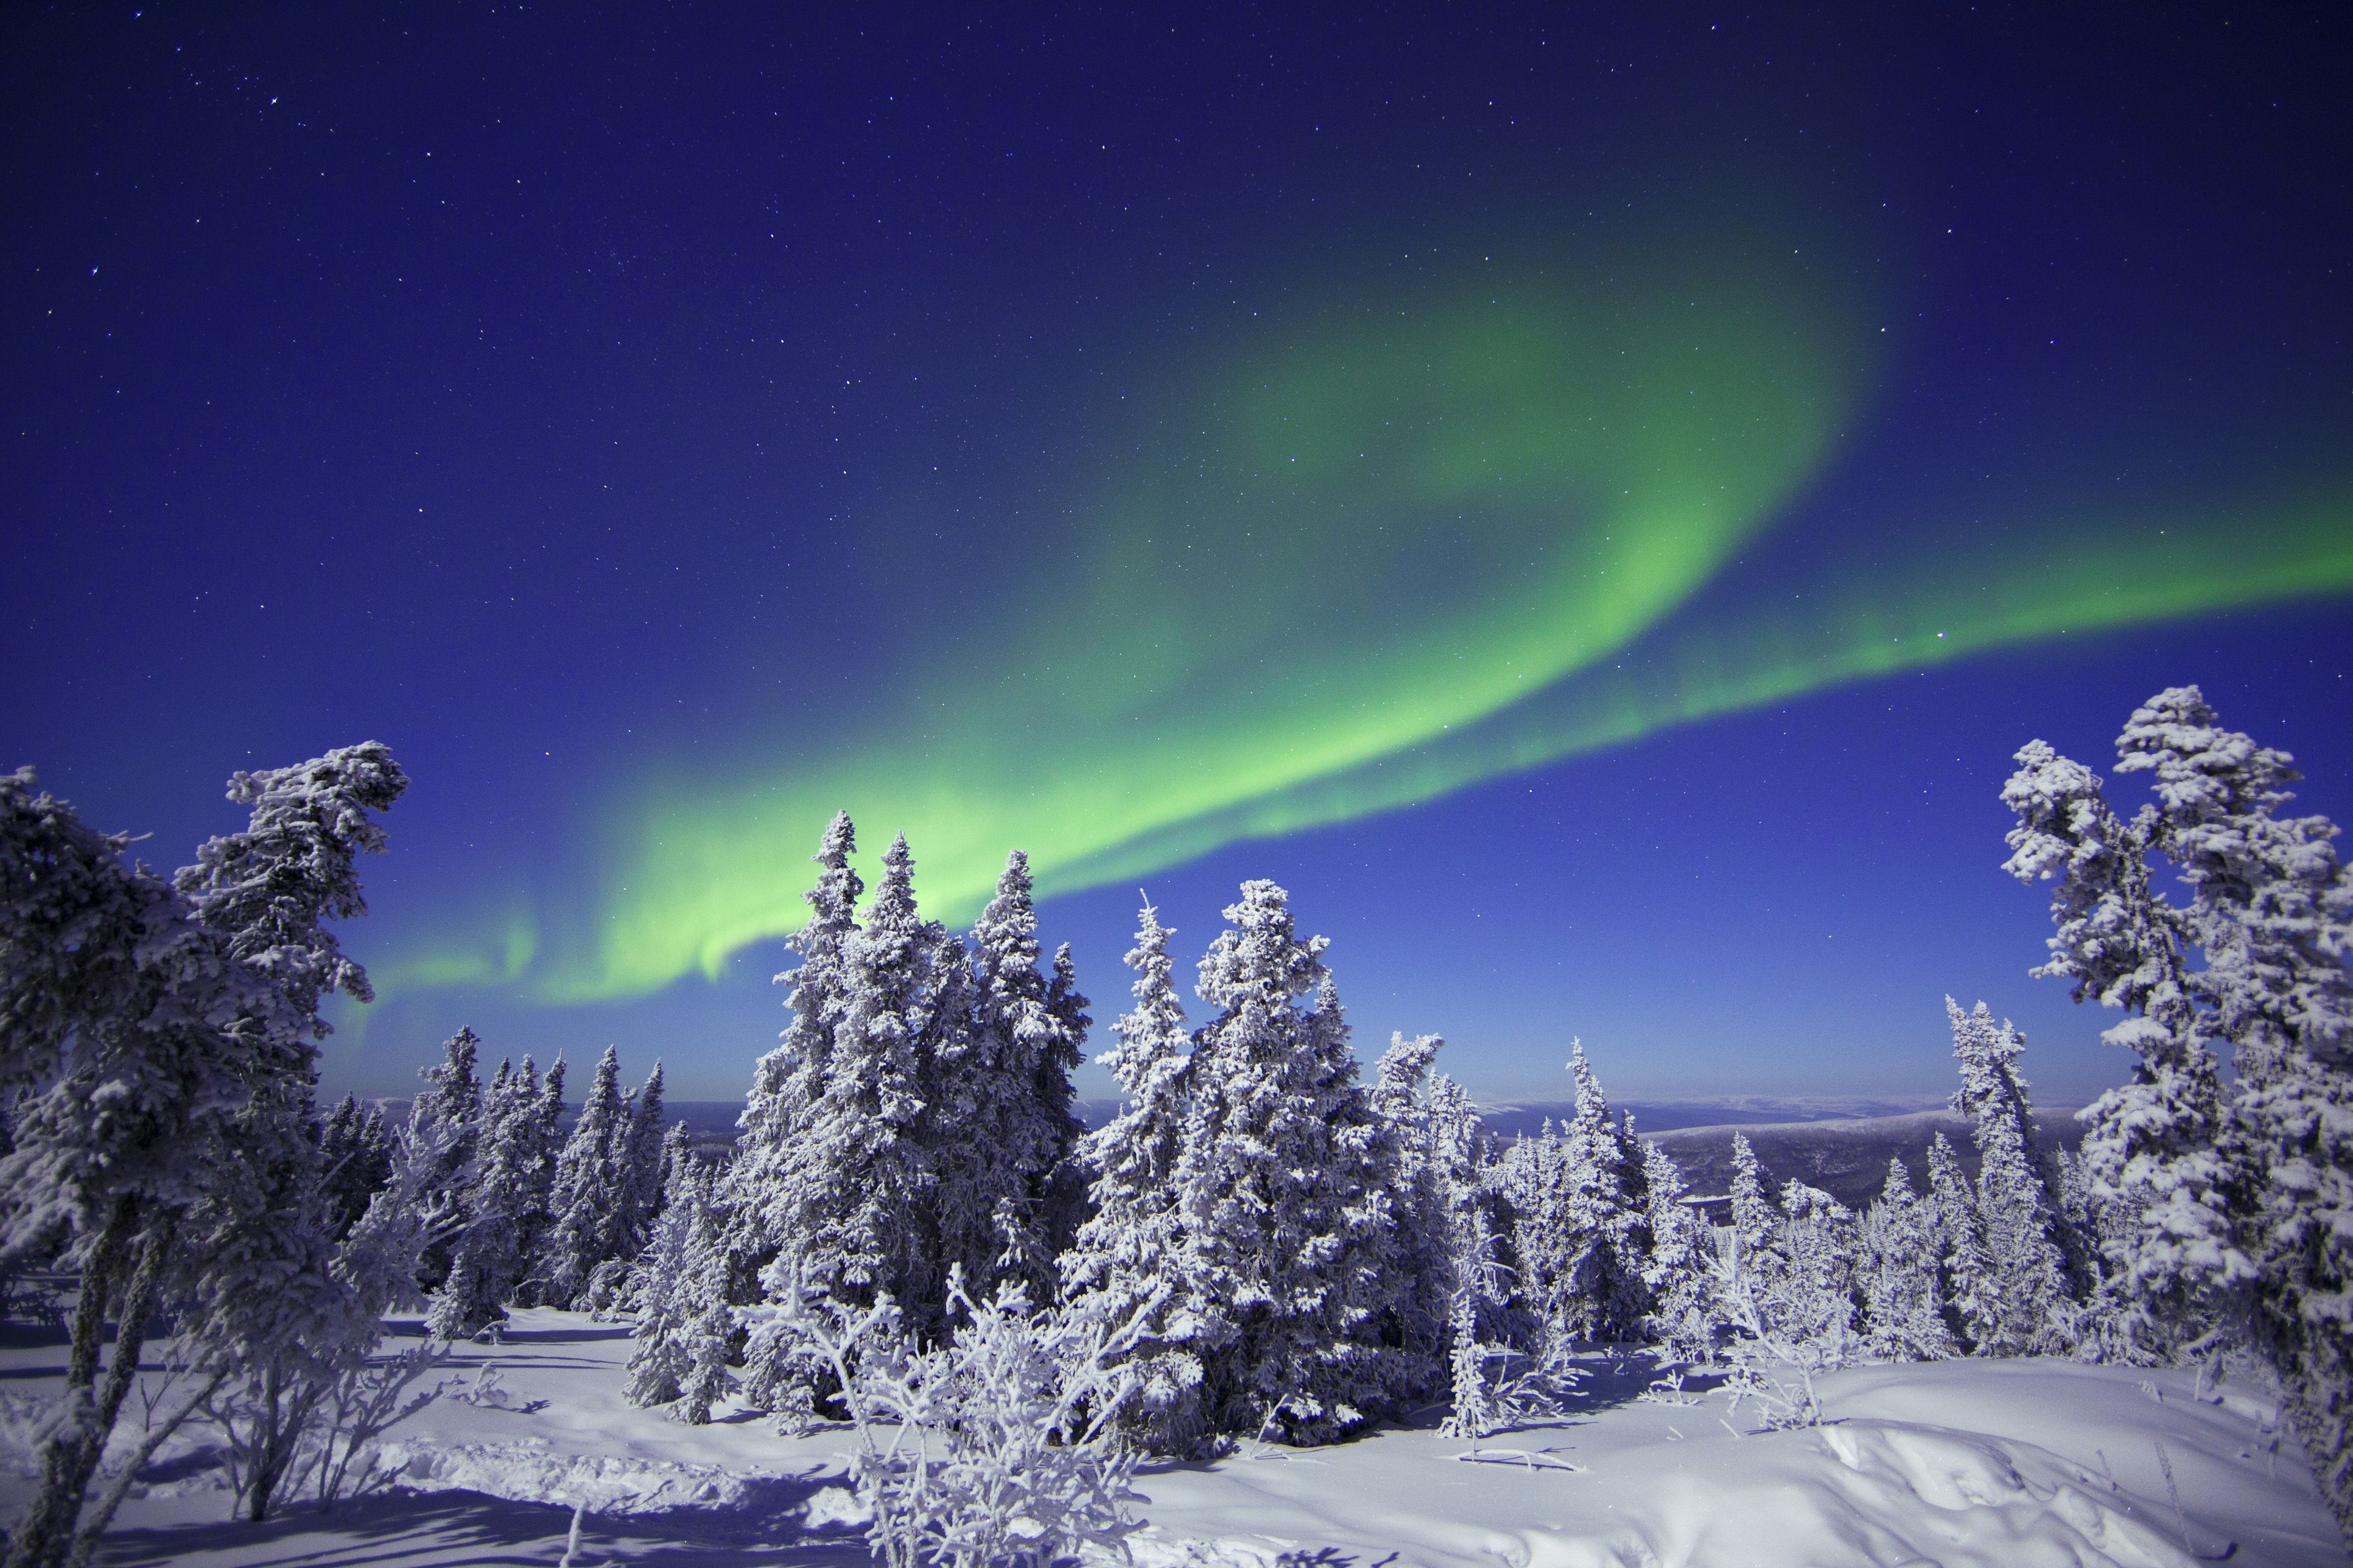 Northern Lights Over Snowy Trees